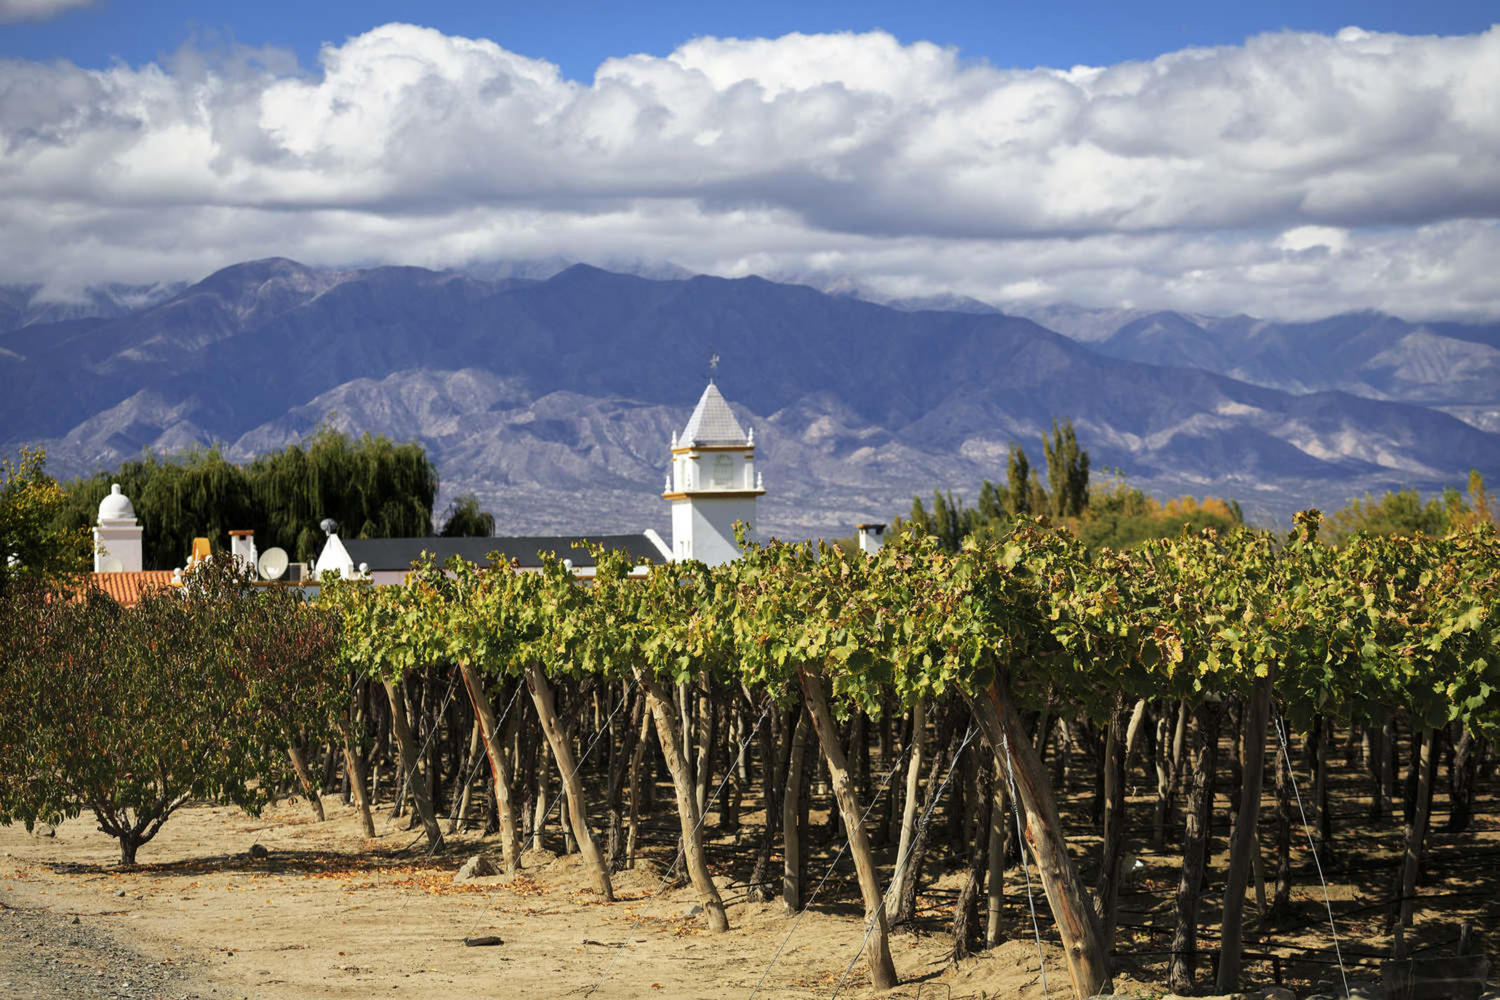 The vineyards of Cafayate